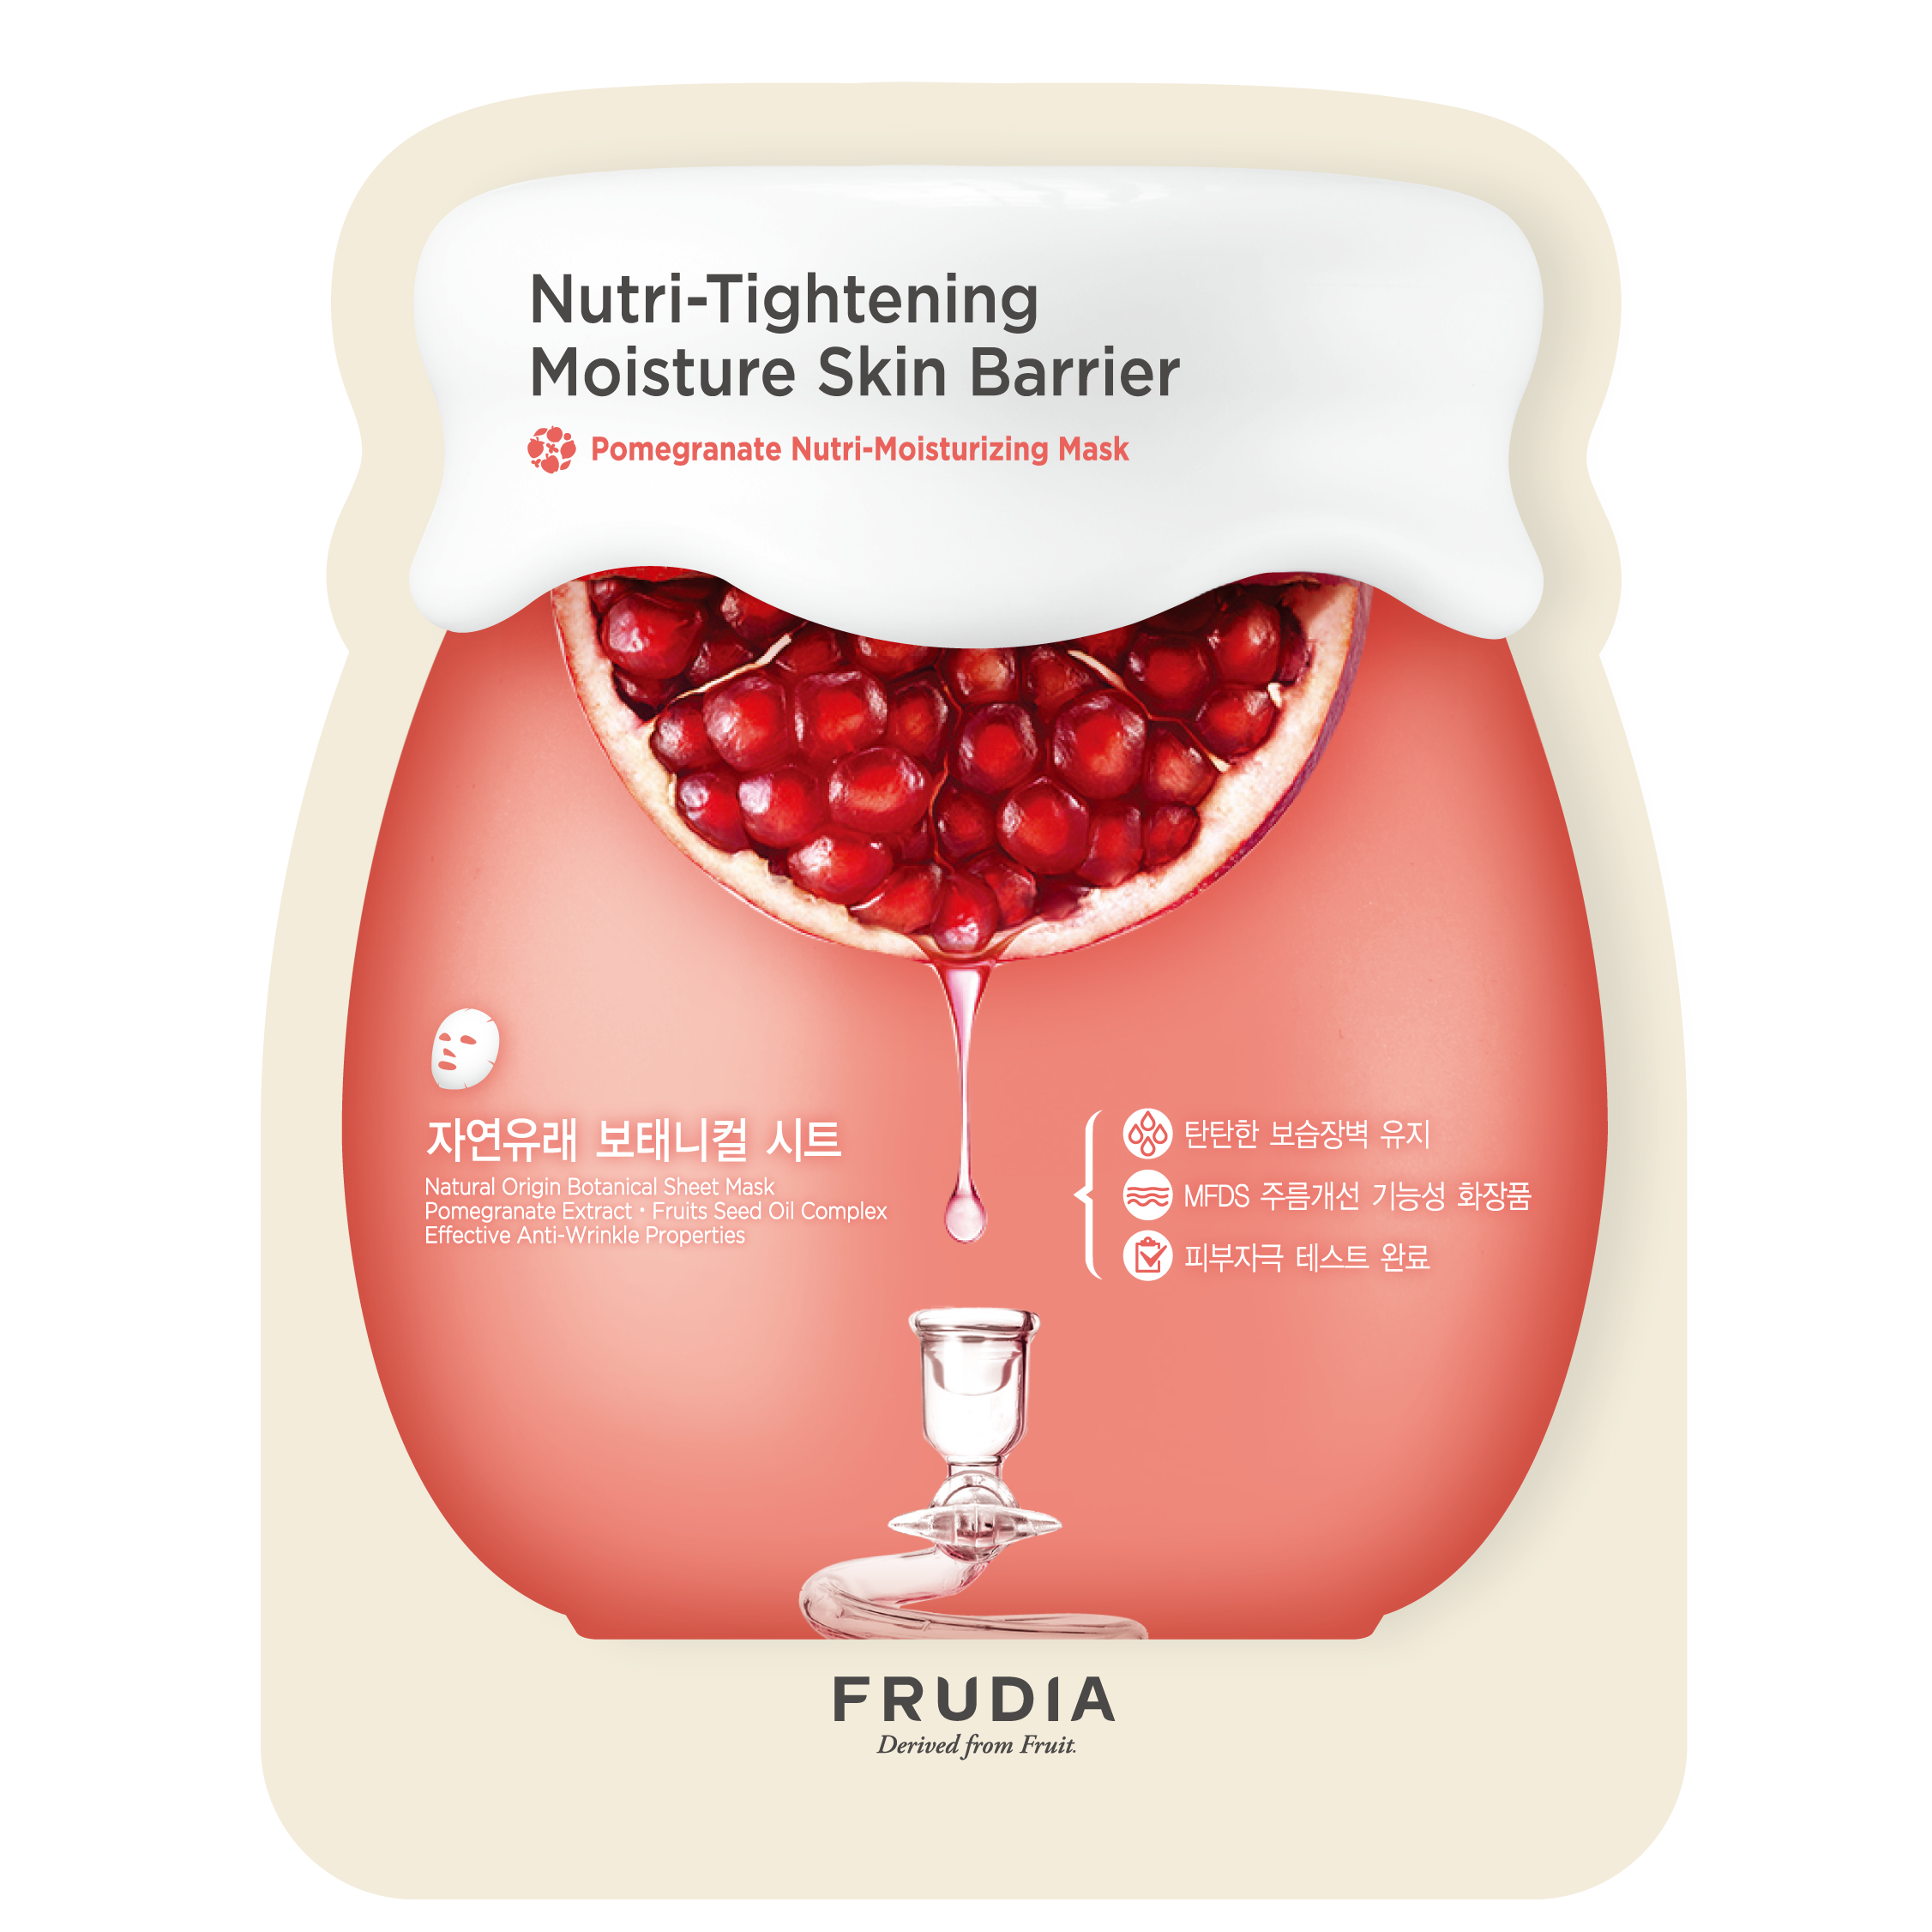 POMEGRANATE NUTRI-MOISTURIZING MASK (MASCARILLA)